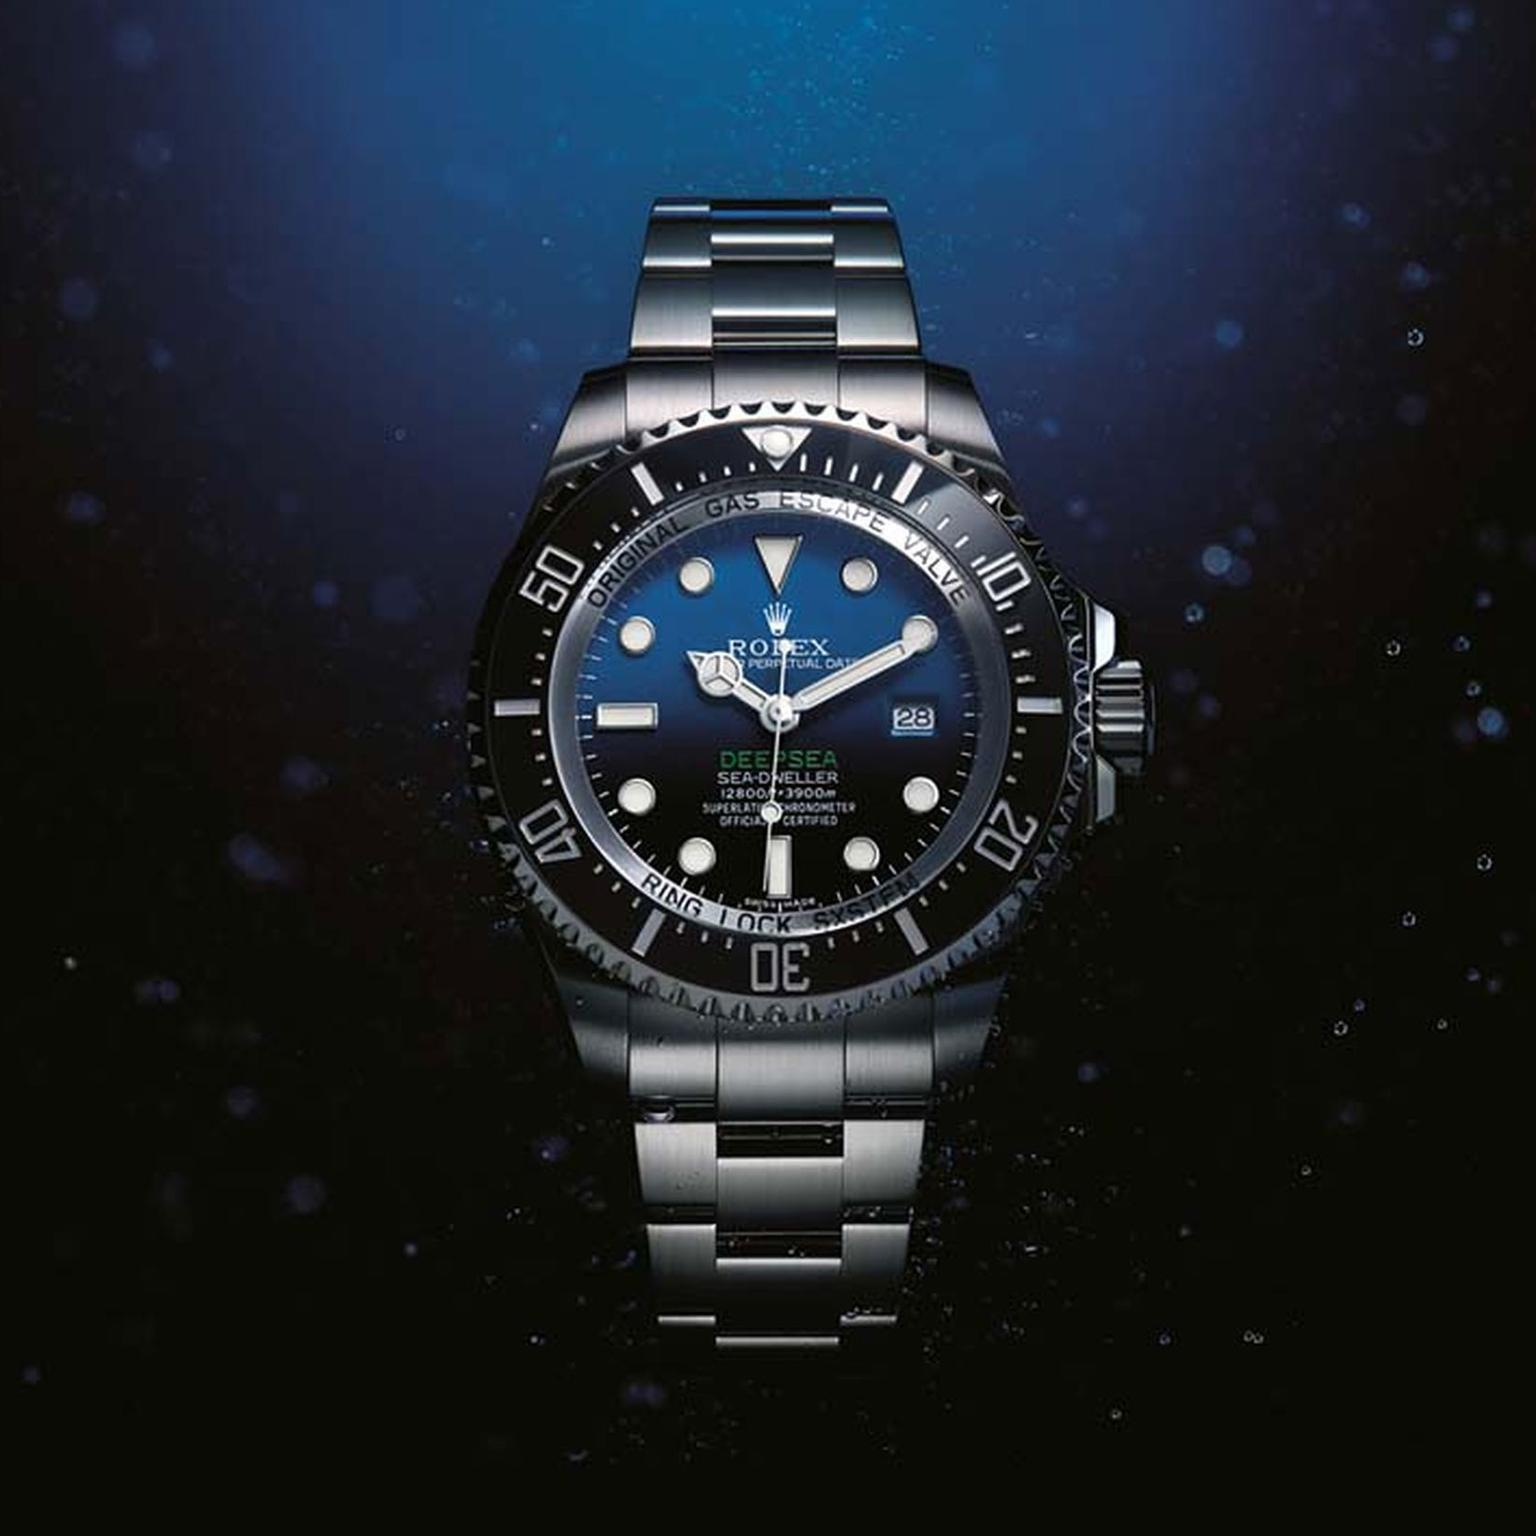 Rolex Deepsea D-Blue dive watch with a symbolic dial